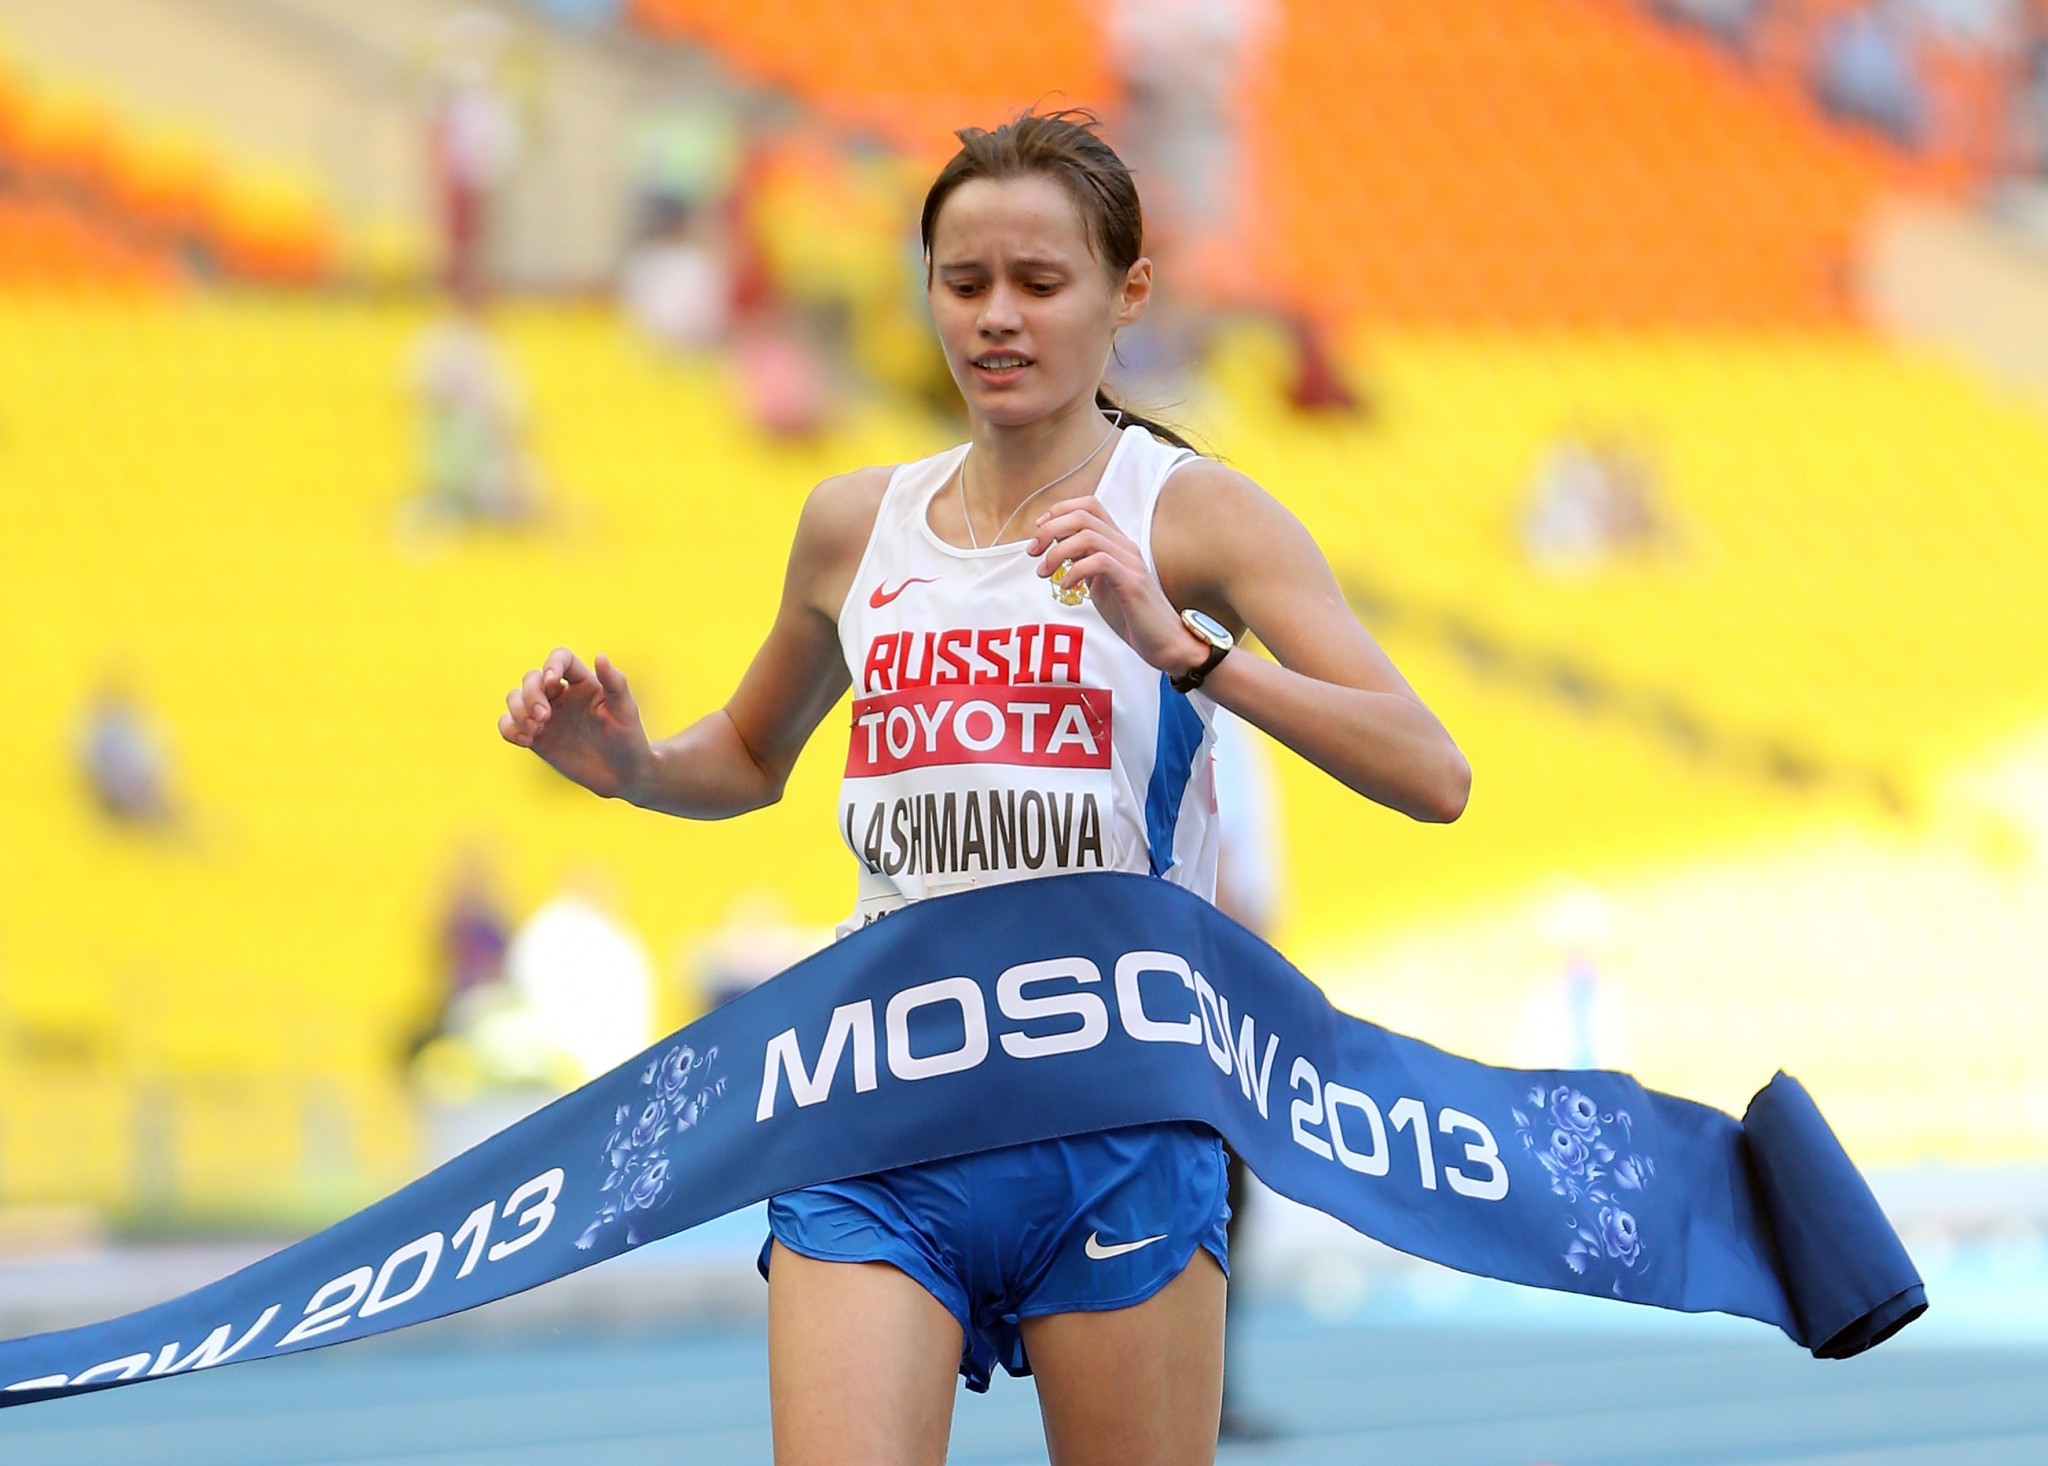 Elena Lashmanova was banned previously for using GW1516 ©Getty Images